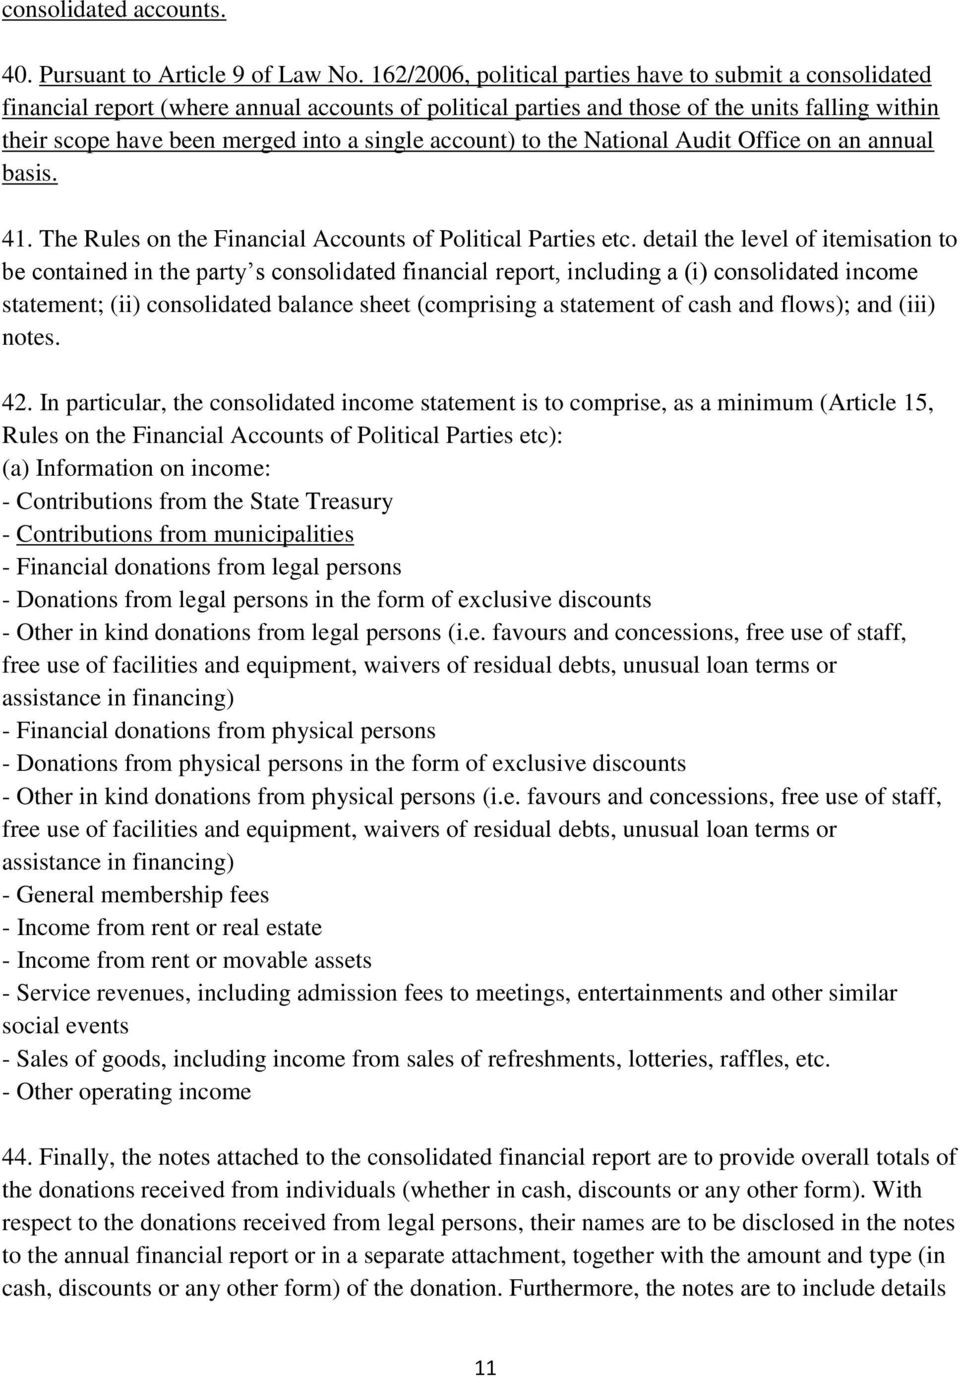 account) to the National Audit Office on an annual basis. 41. The Rules on the Financial Accounts of Political Parties etc.